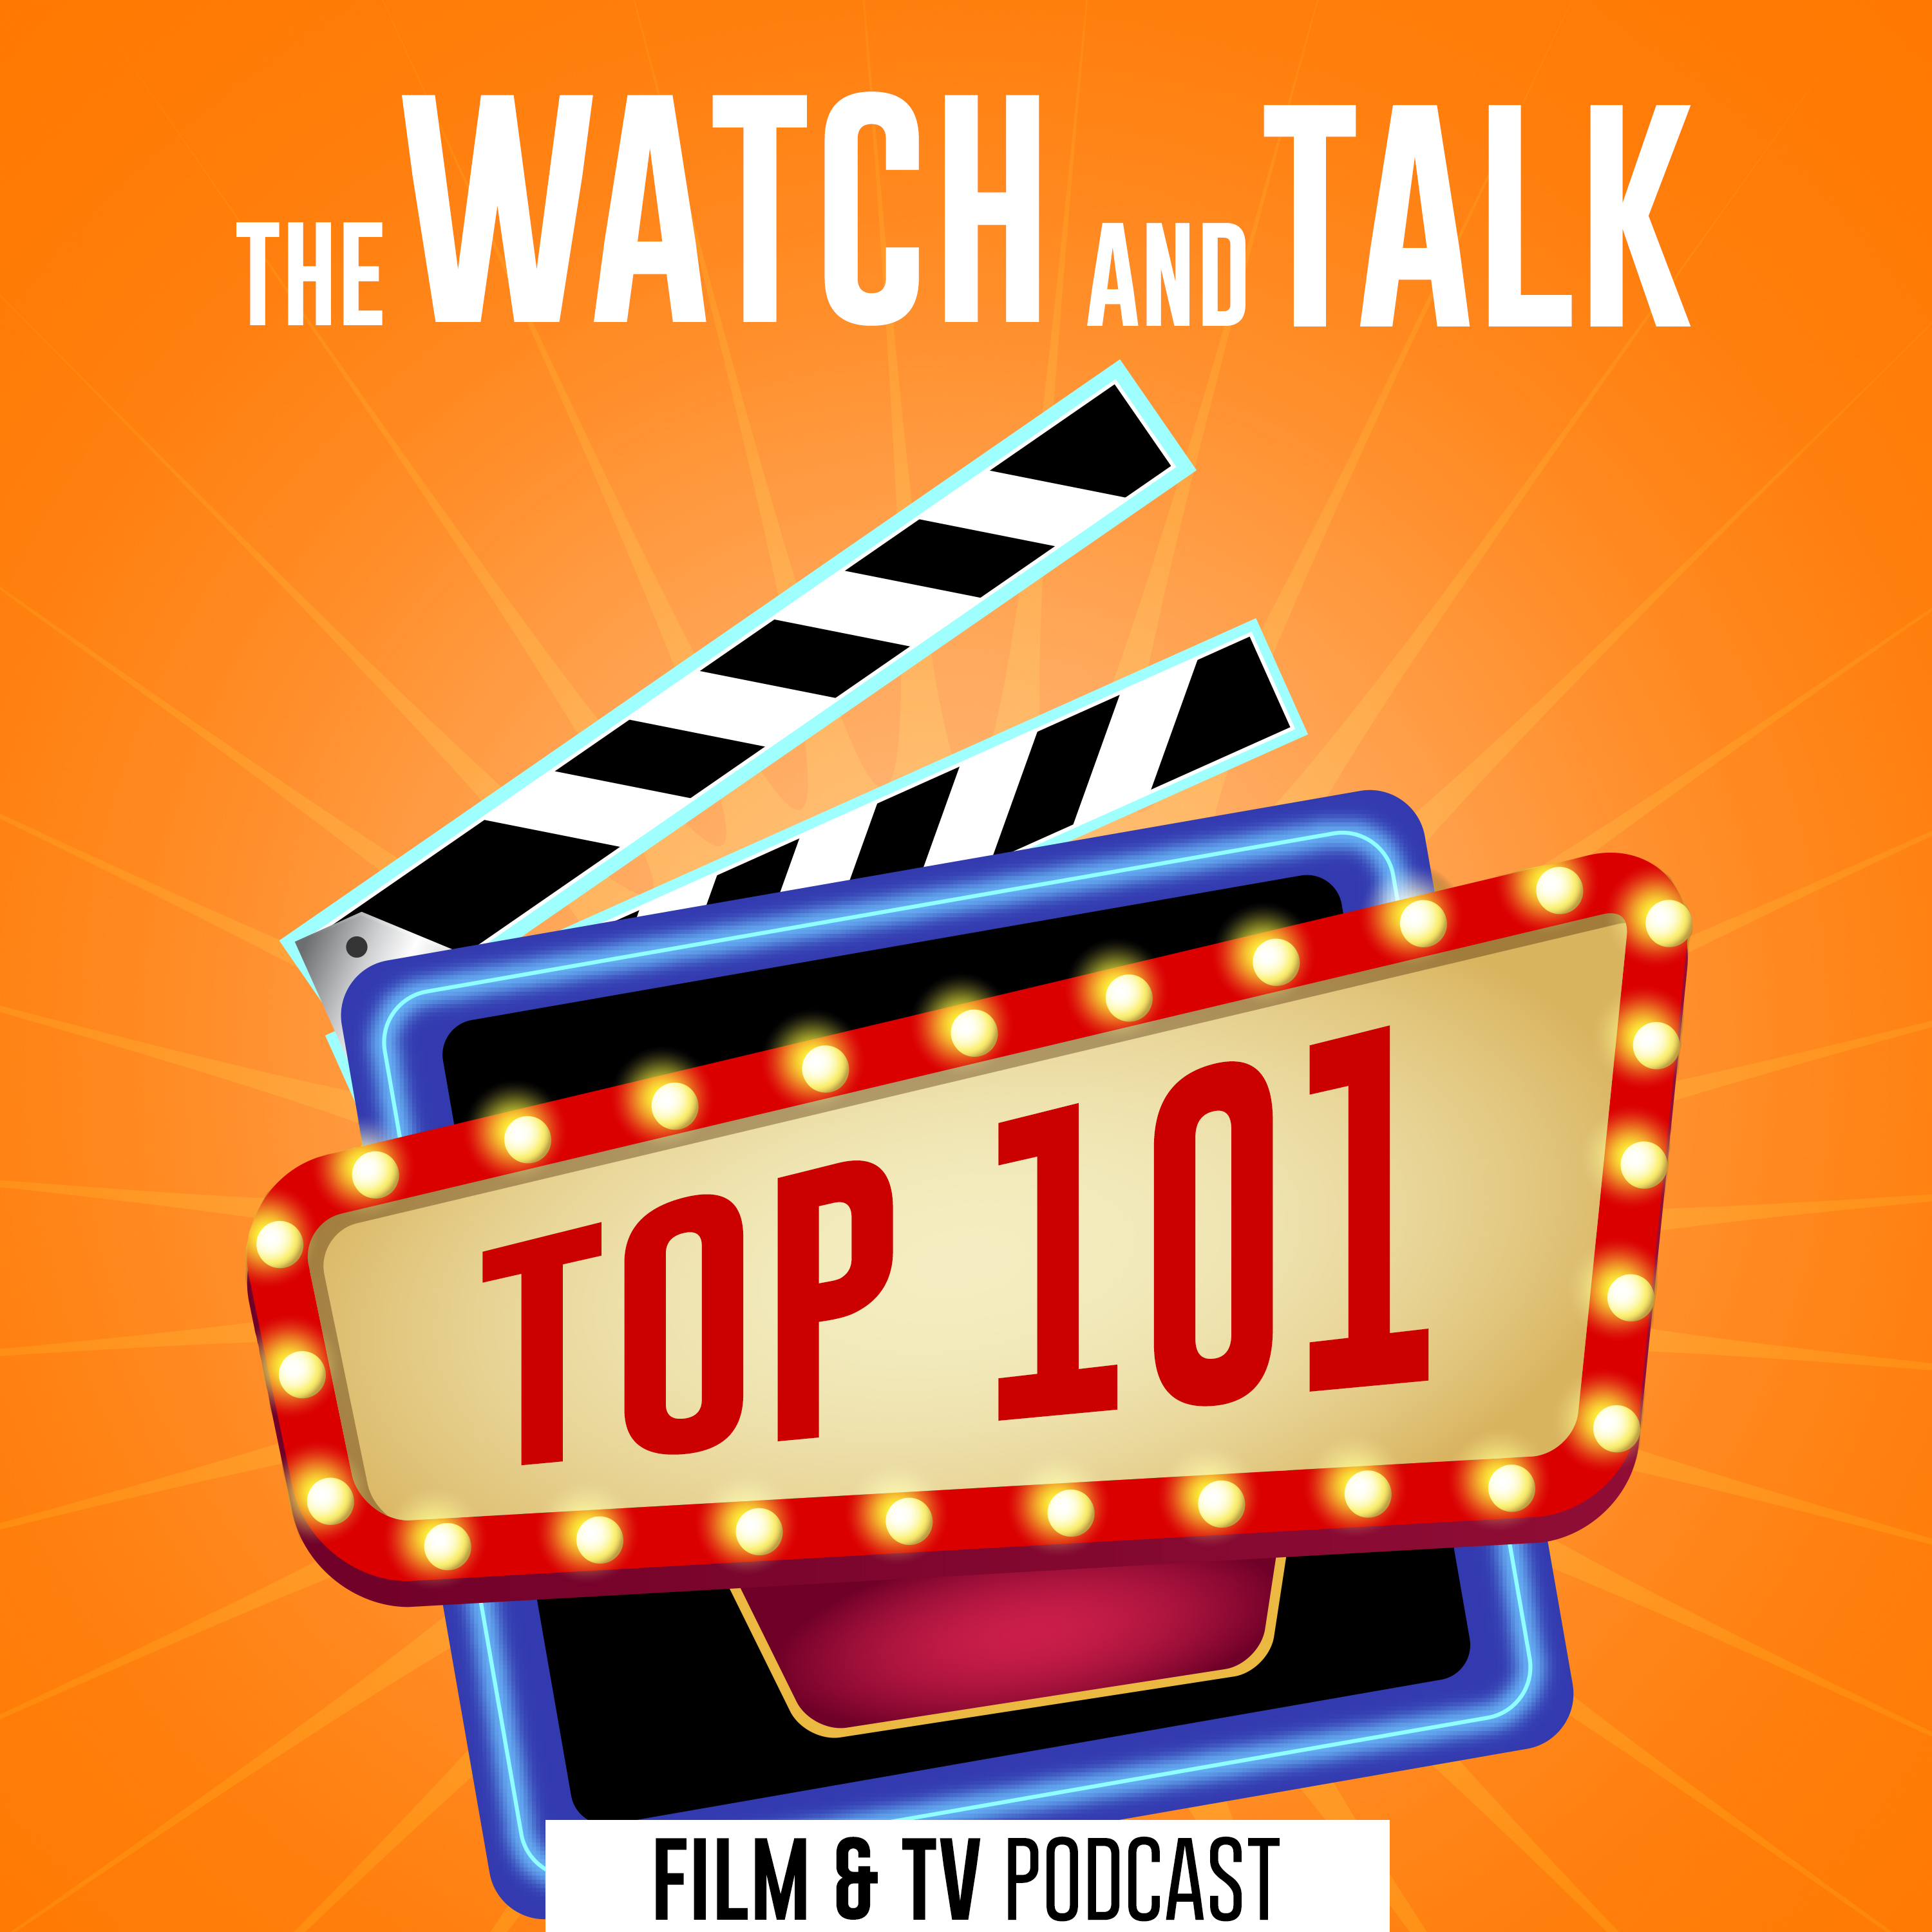 The Watch And Talk Top 101 | Film Podcast show art